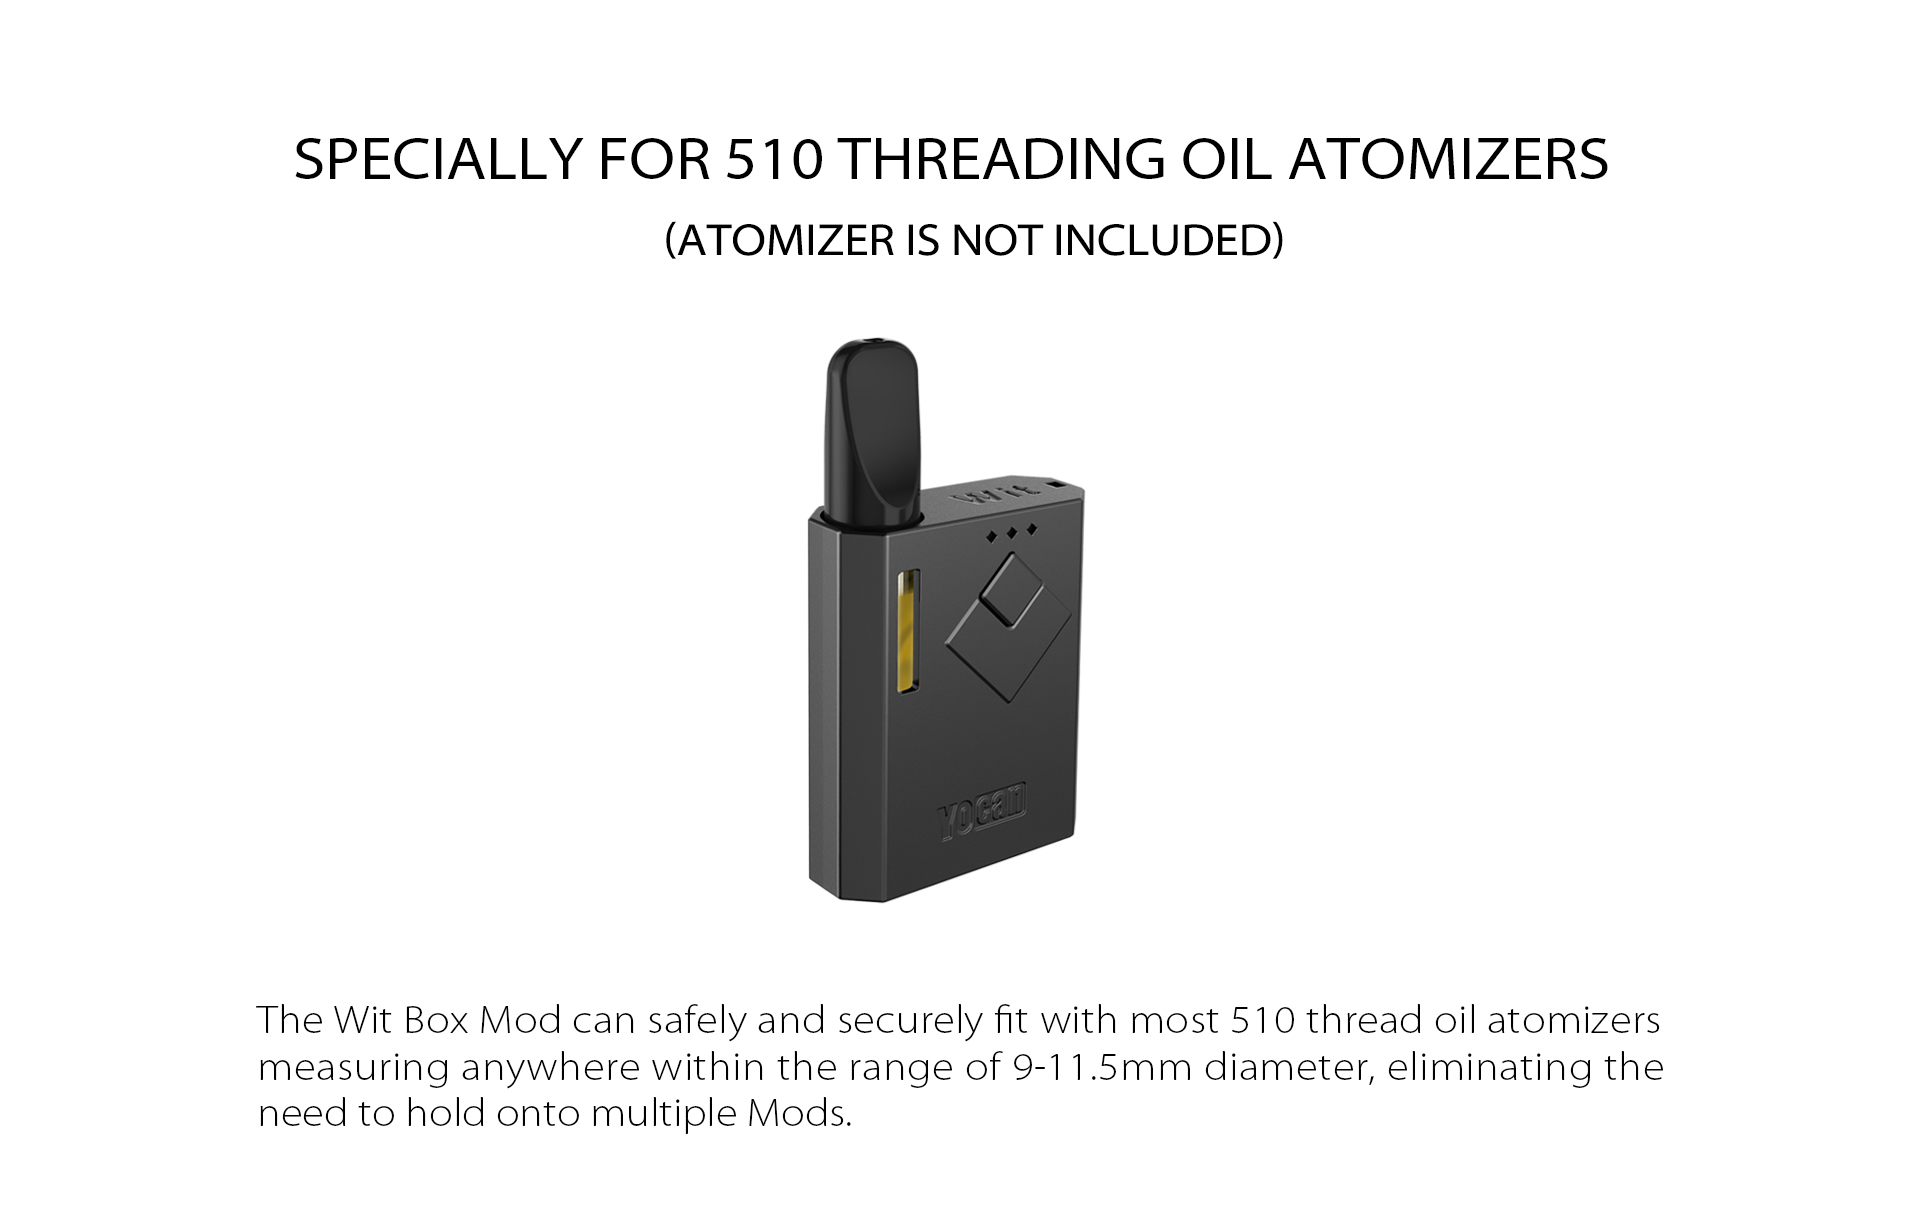 The Yocan Wit Box Mod Battery specially for 510 threading oil cartridges.